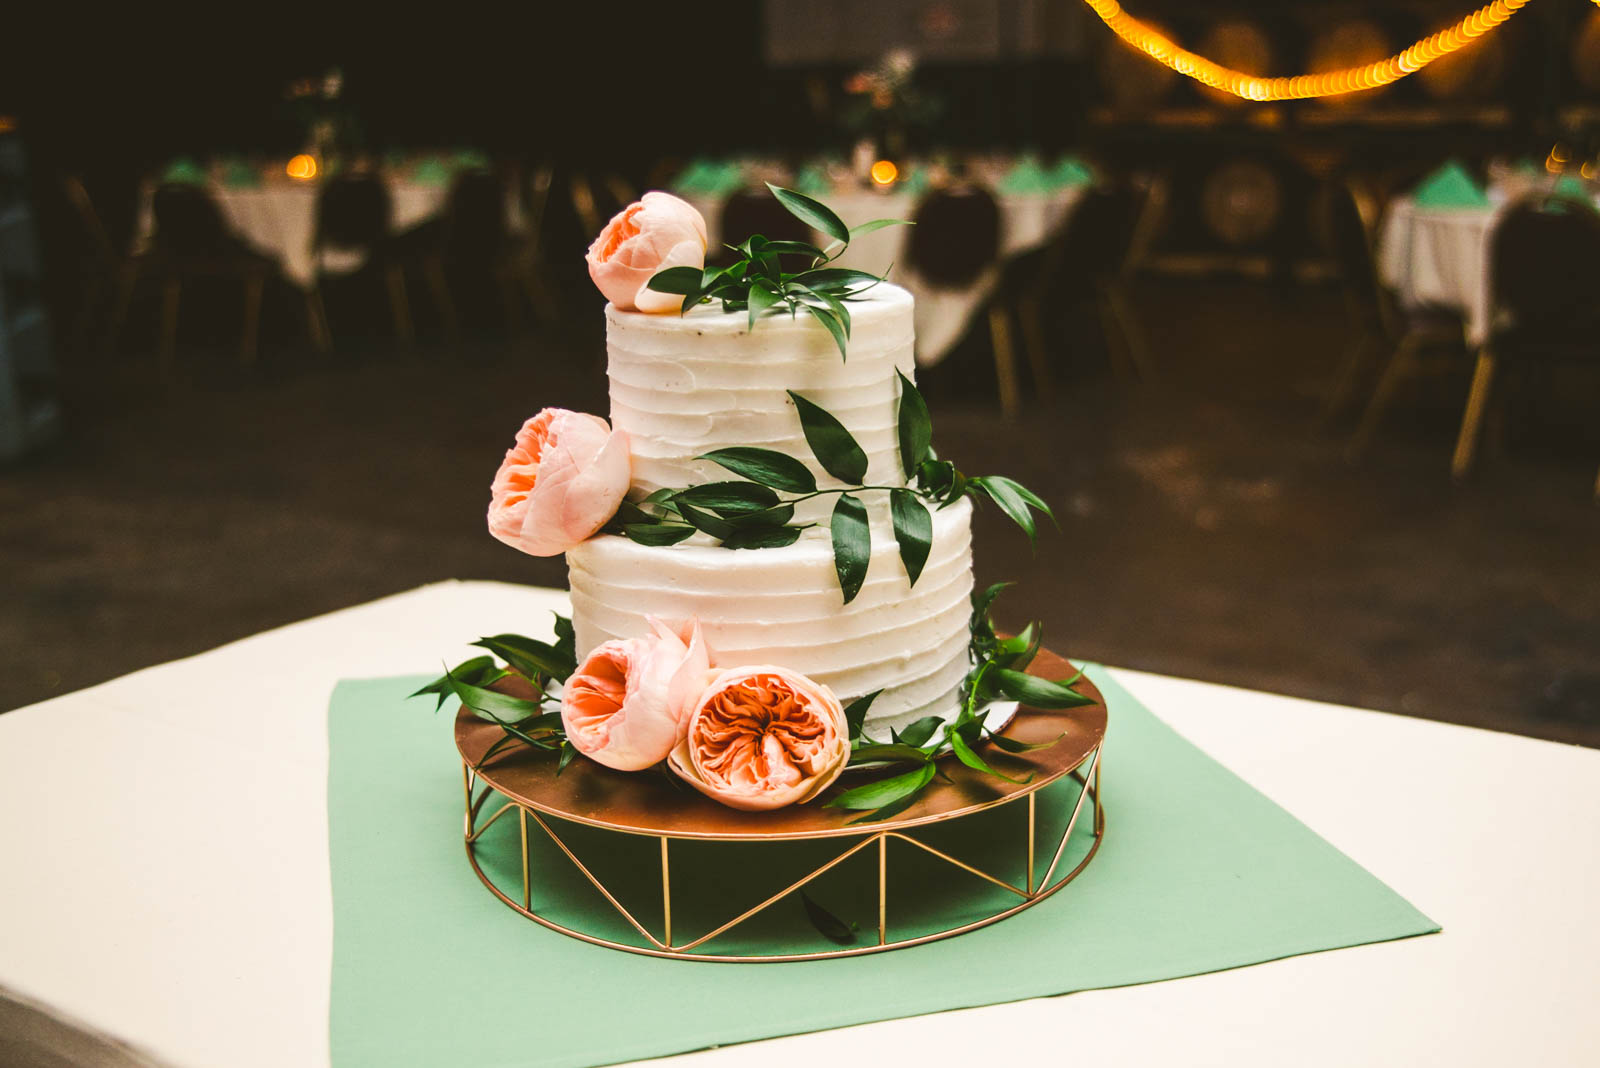 Wedding Cake at Maumee Bay Brewing Company in Toledo Ohio at Reception